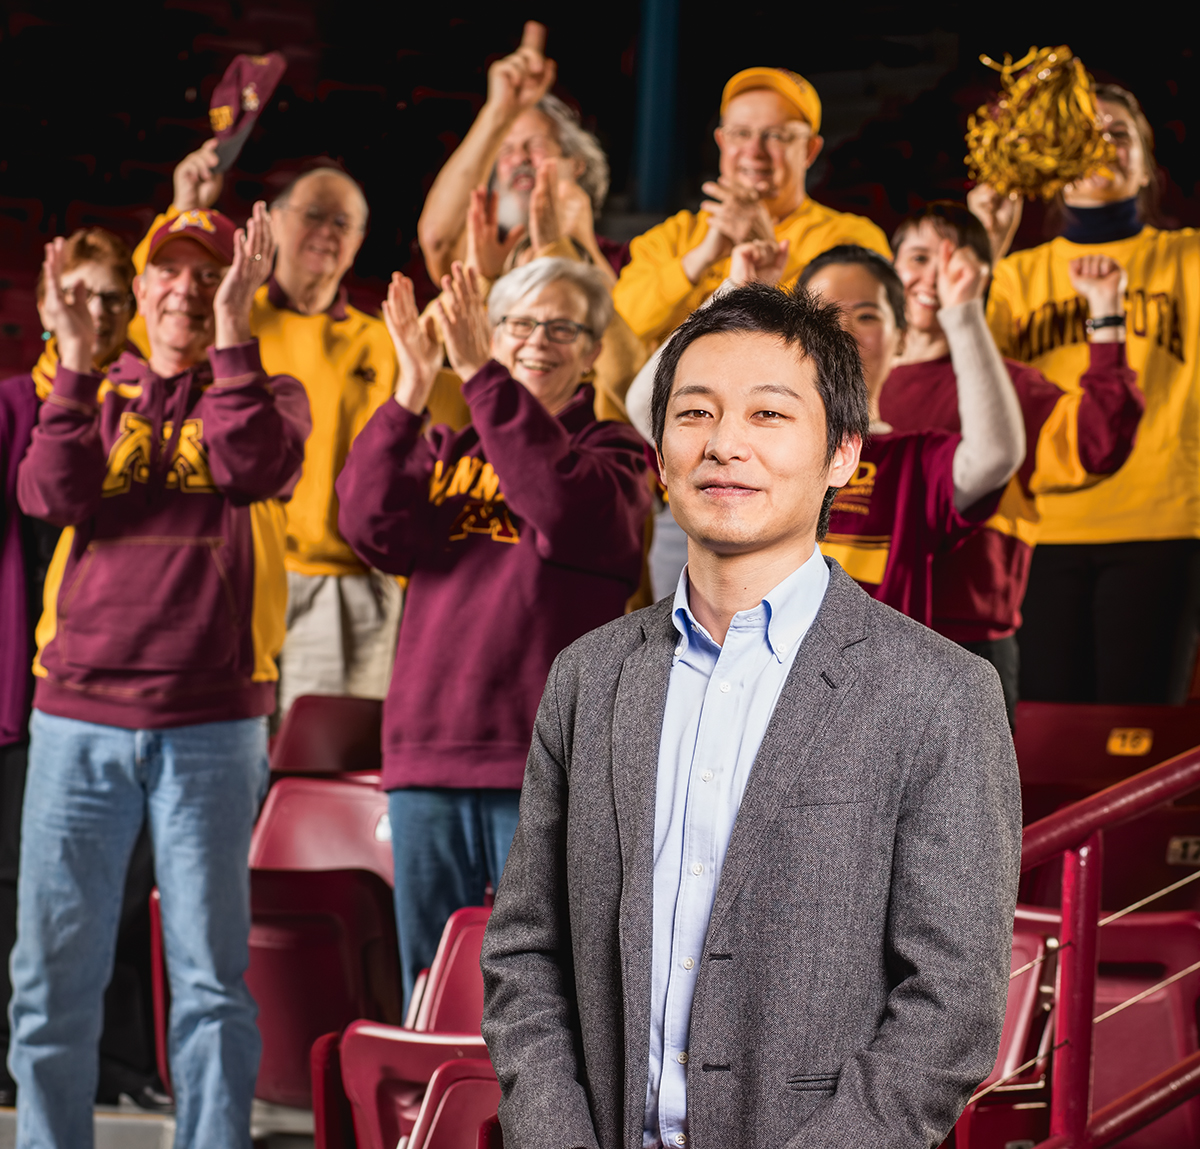 Professor Yuhei Inoue stands with fans wearing Gopher gear